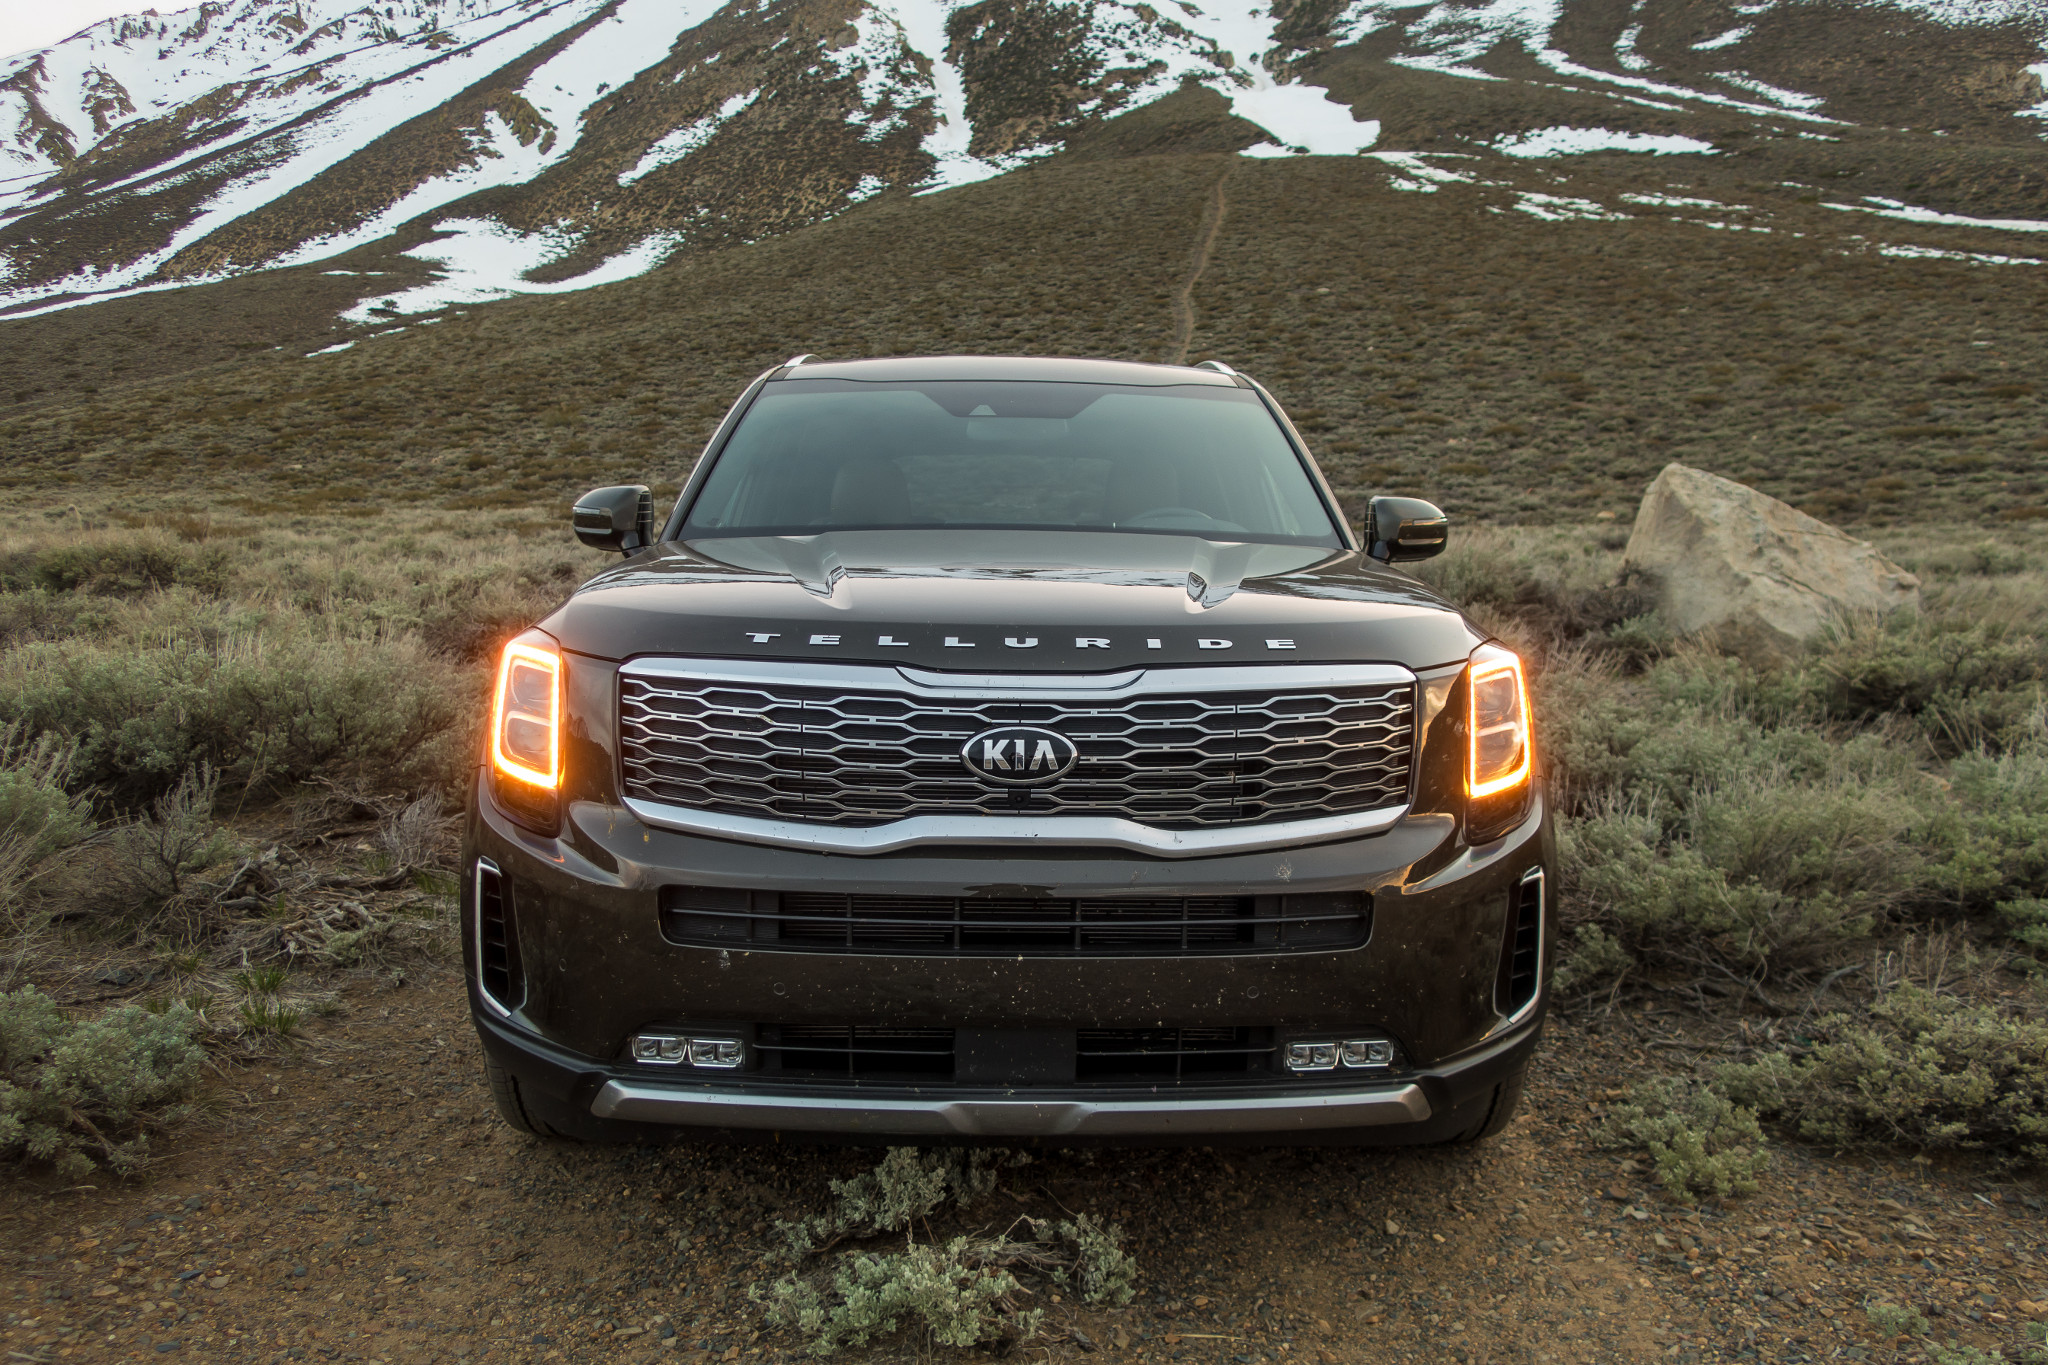 Telluride Or Die New Kia Suv So Much Better Than Sorento It S Fratricide News Cars Com - Kia Suv